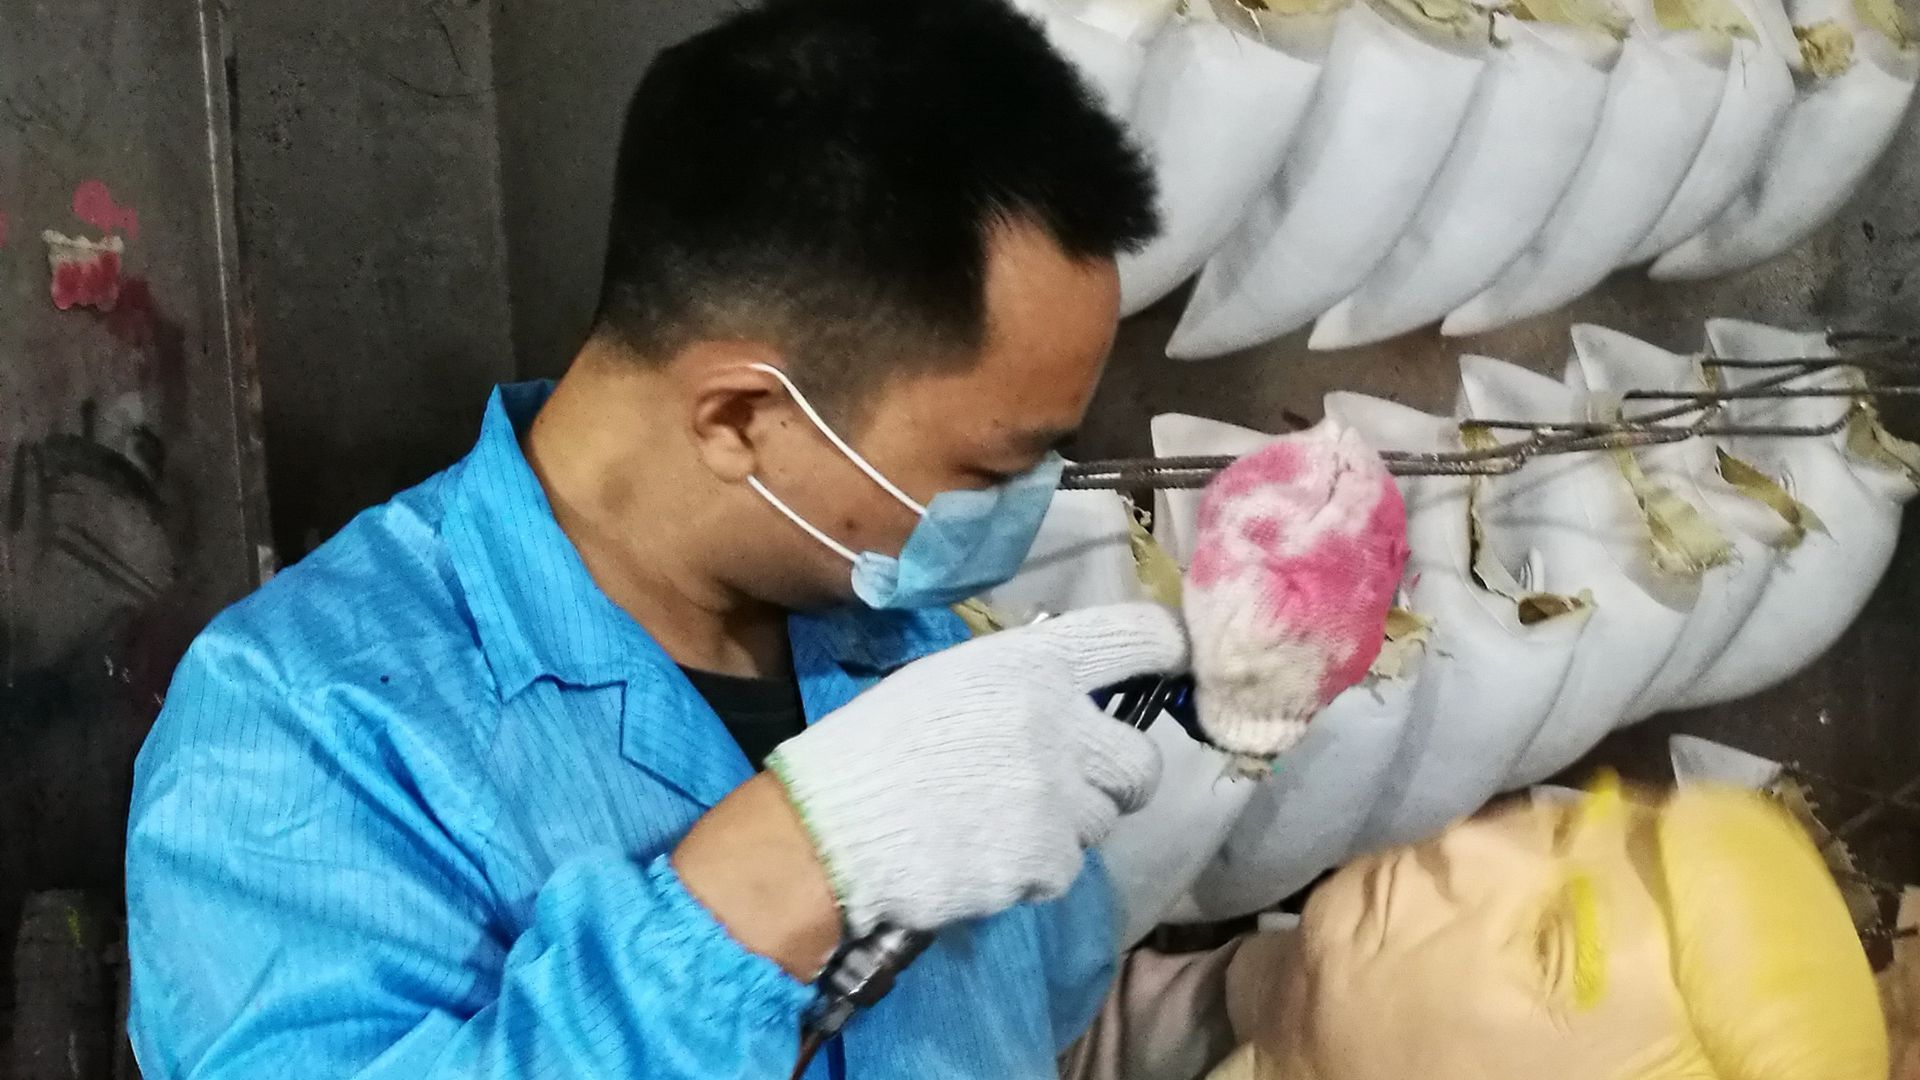 An employee paints a mask of American president-elect Donald Trump at a latex crafts factory on November 9, 2016 in Shenzhen, Guangdong Province of China.